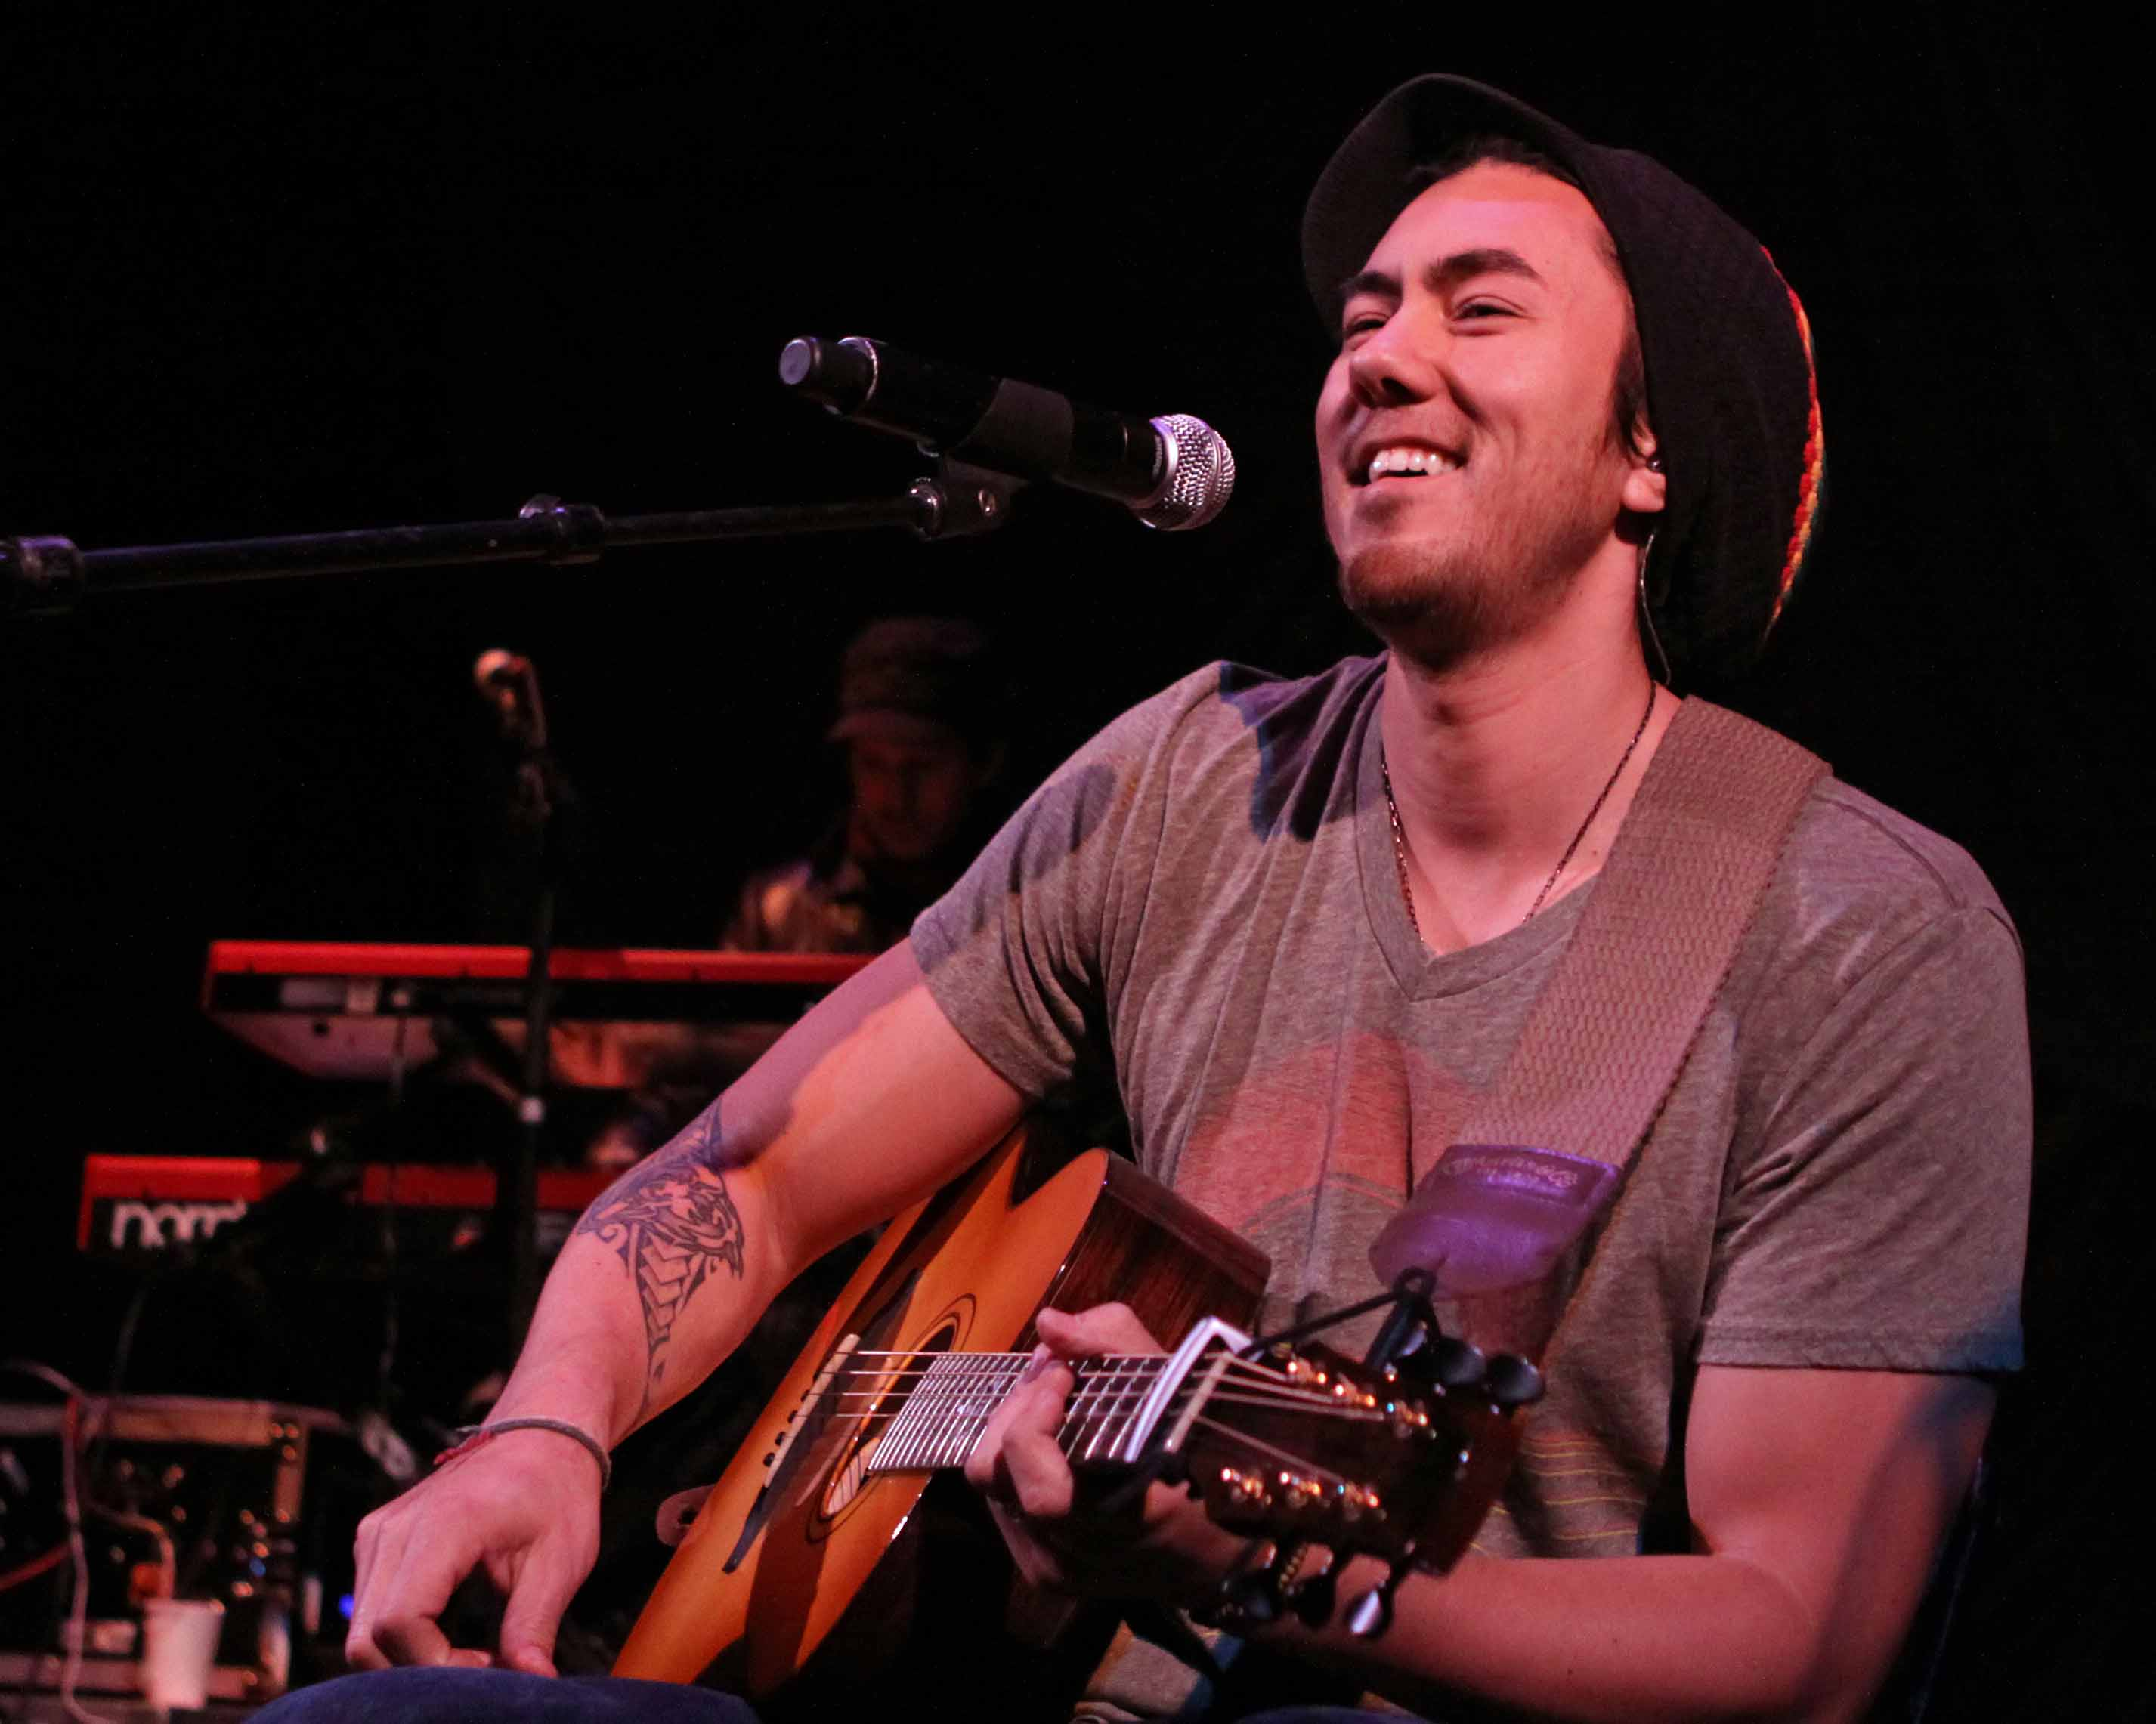 Colbie caillat justin young live concert photos colbie caillat true